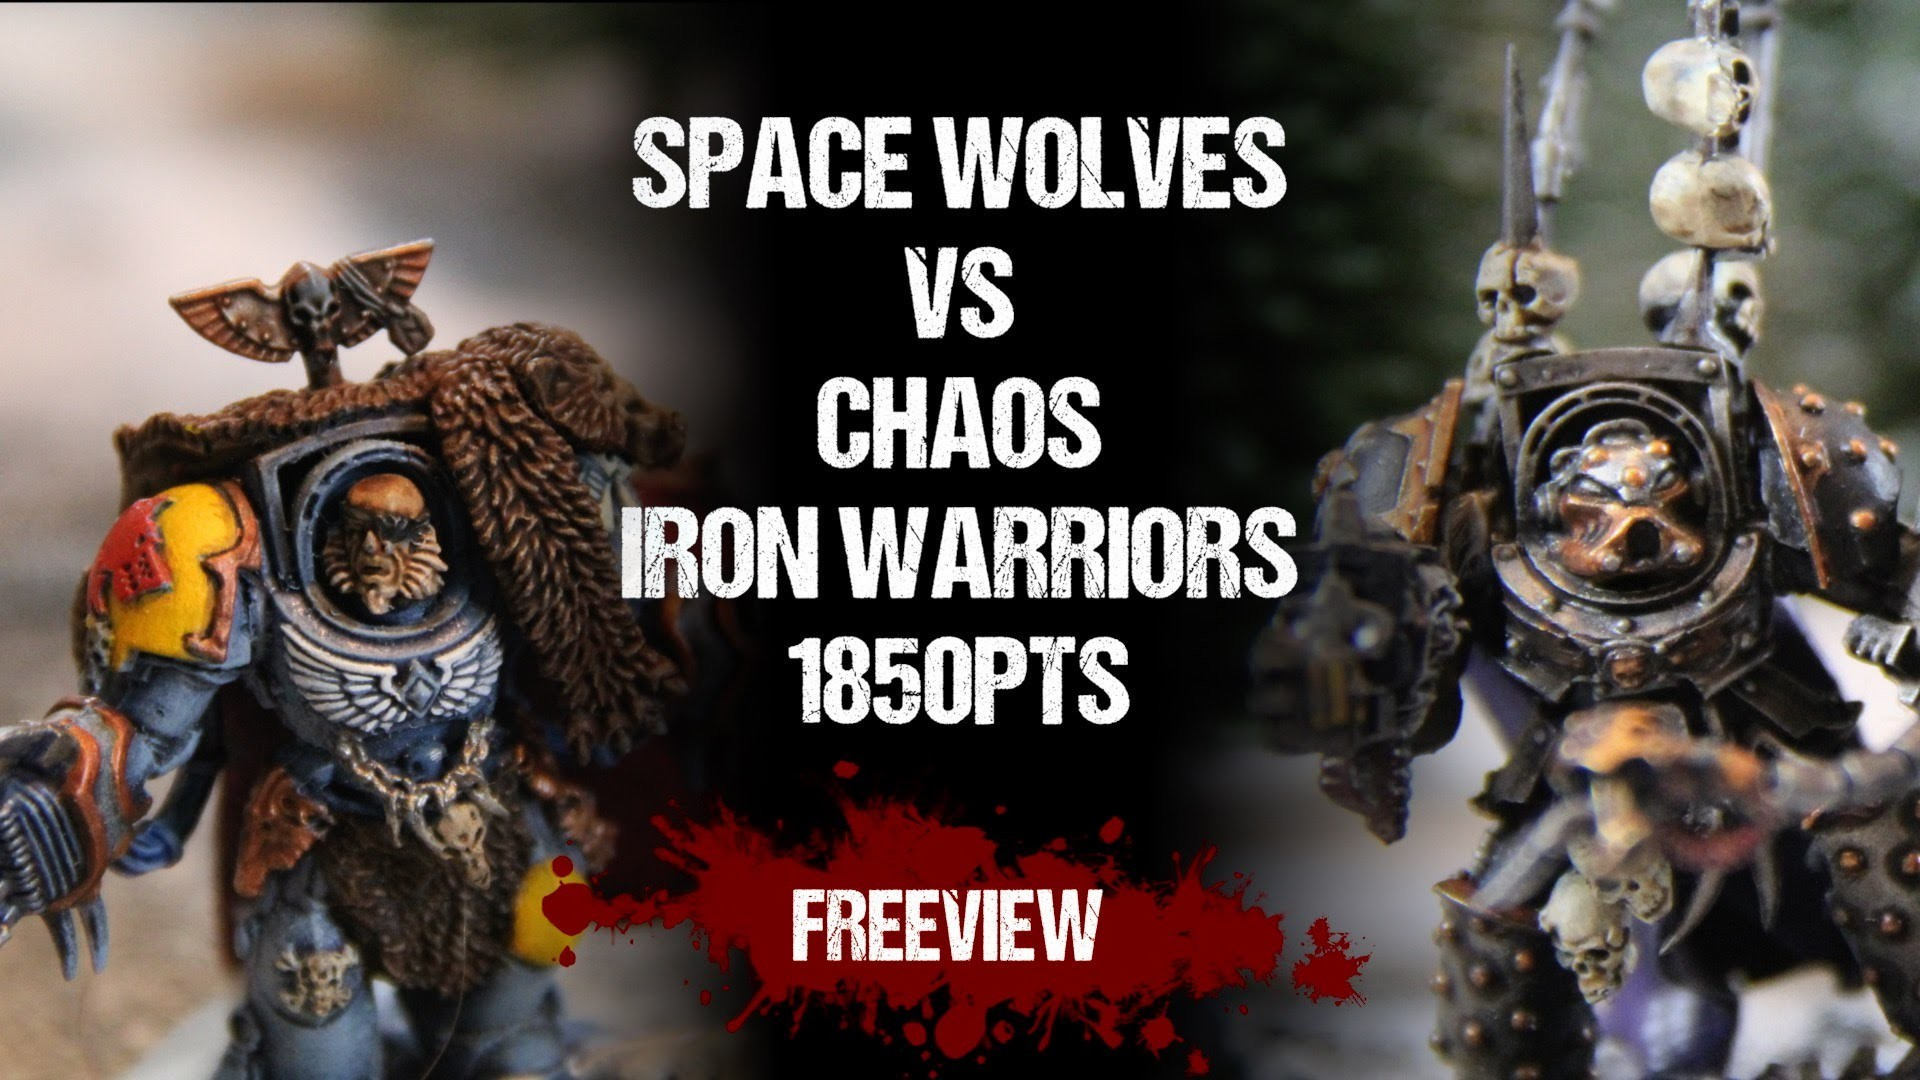 Warhammer 40,000 Battle Report: Space Wolves vs Chaos Iron Warriors 1850pts  – YouTube